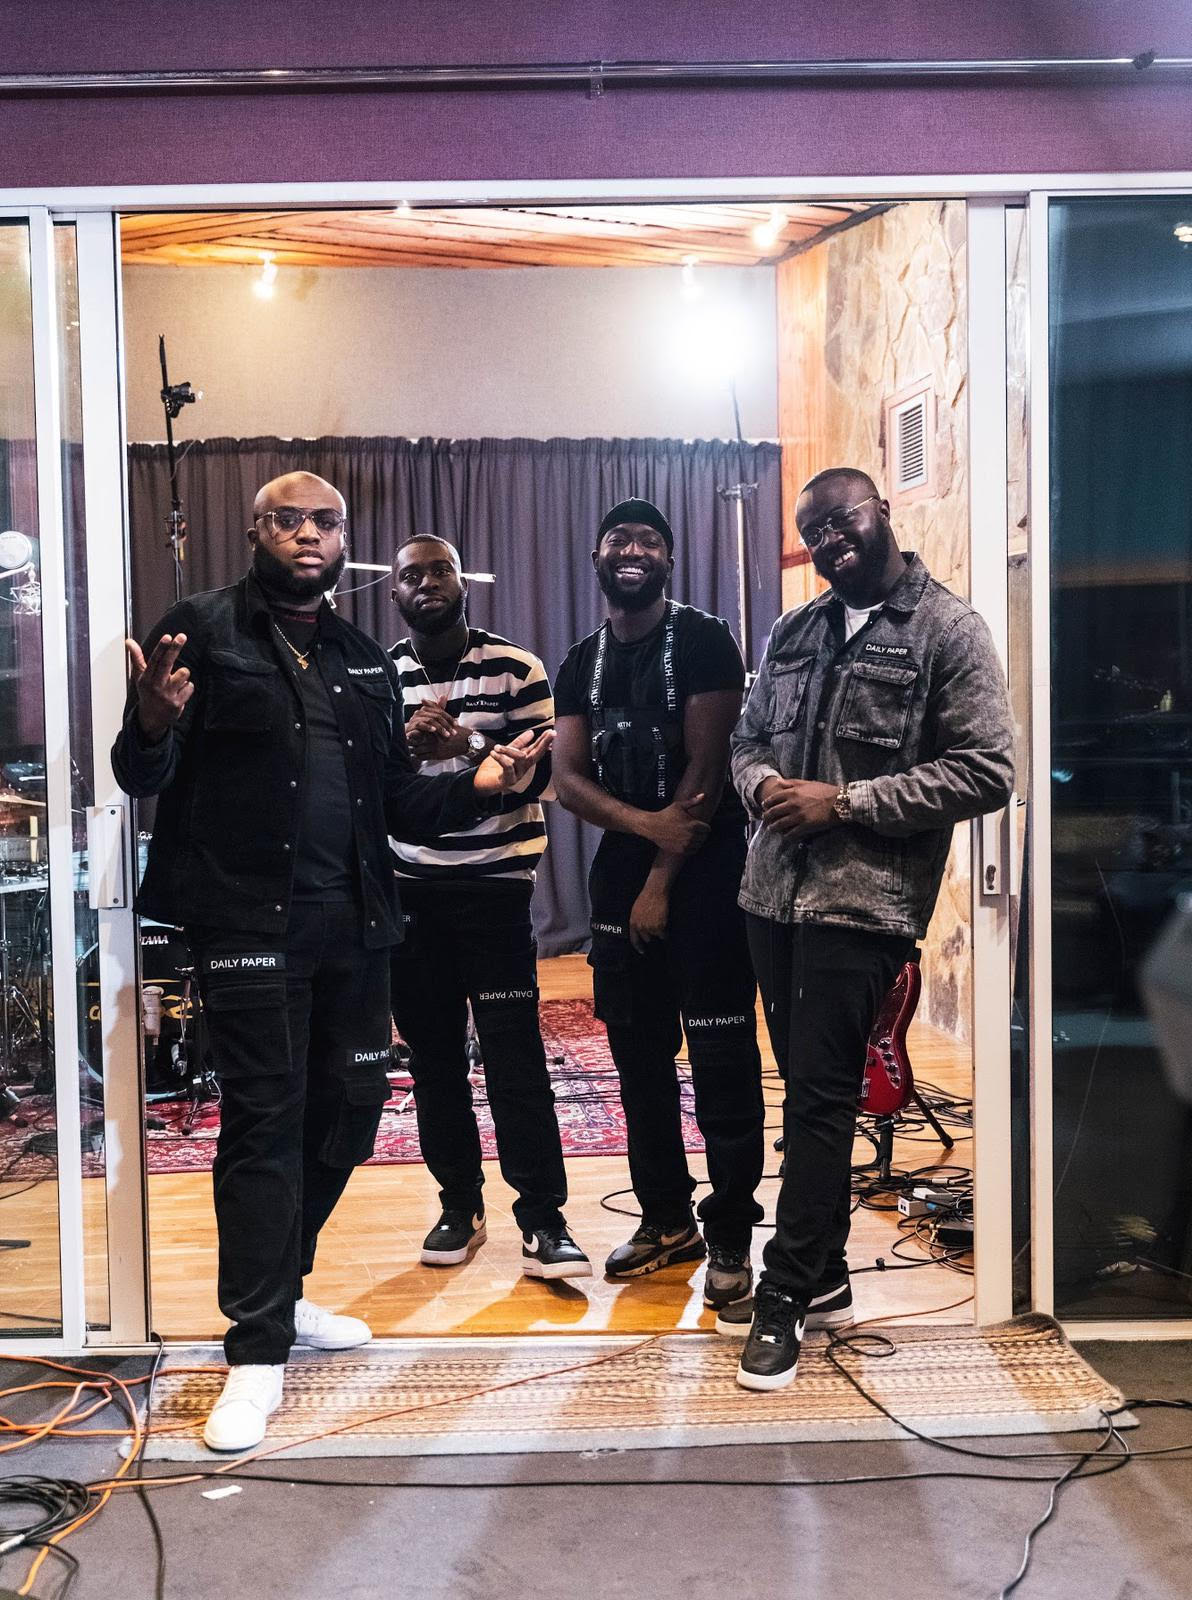 The Compozers Encore Sessions: 2020 HipHop Edition - Pop Smoke, Dior | Roddy Ricch, The Box + More